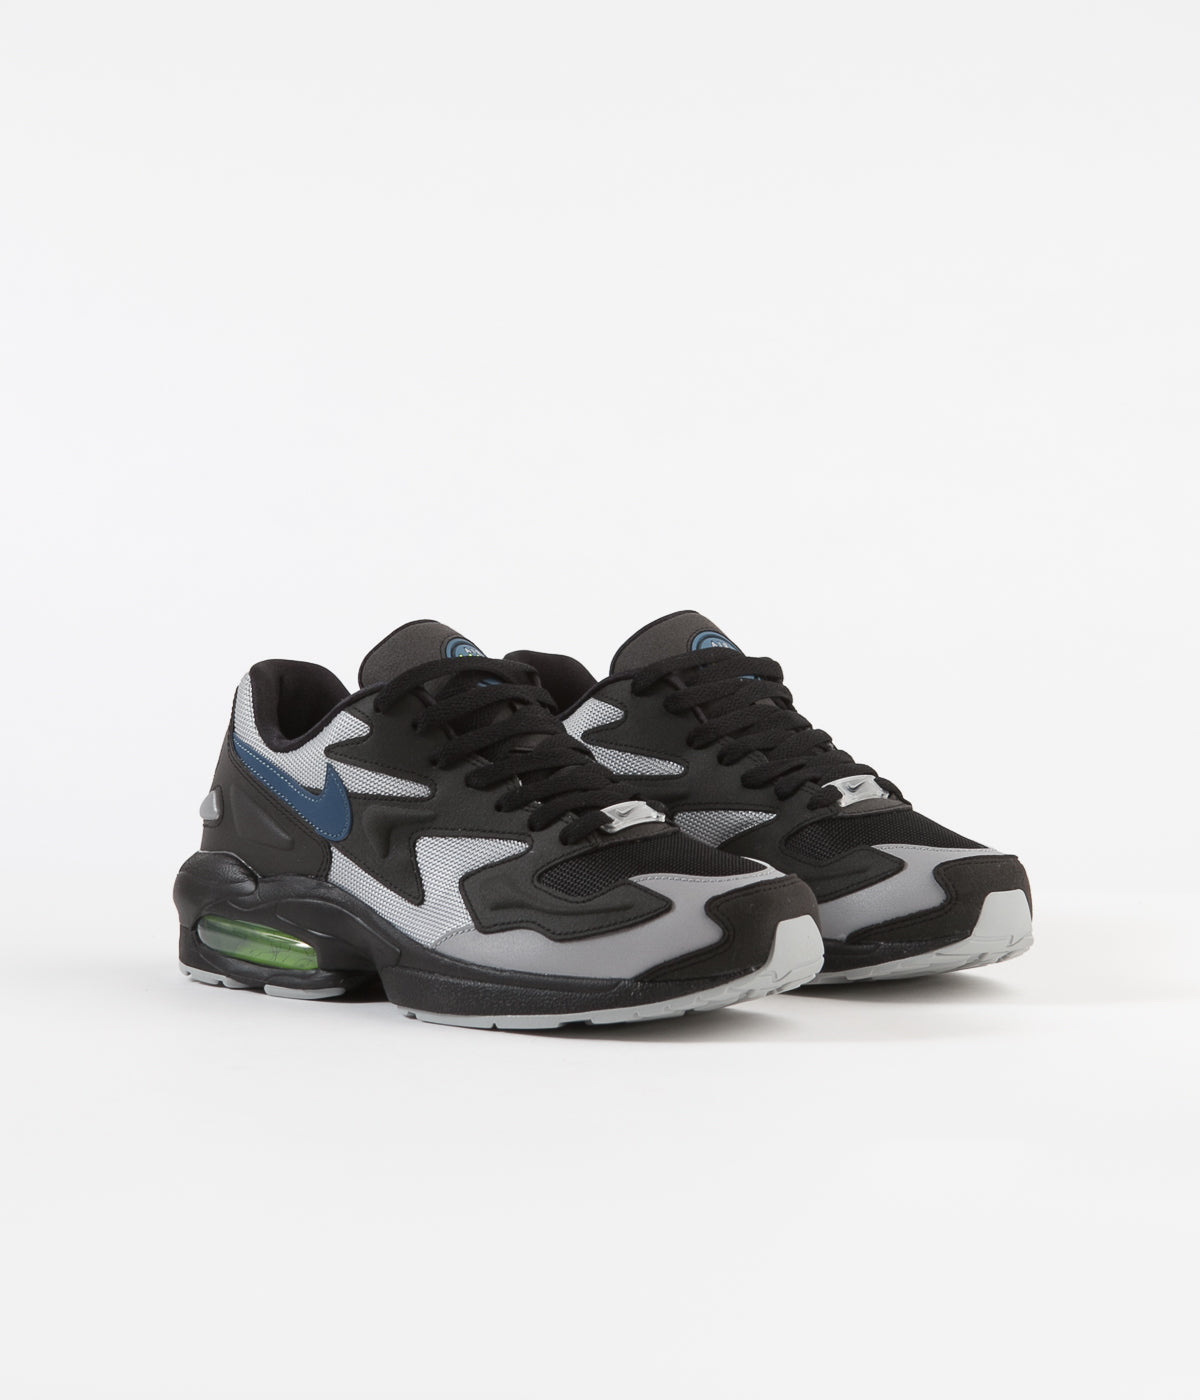 lowest price 681b9 1ca61 ... Nike Air Max 2 Light Shoes - Black   Thunderstorm - Wolf Grey - Volt ...